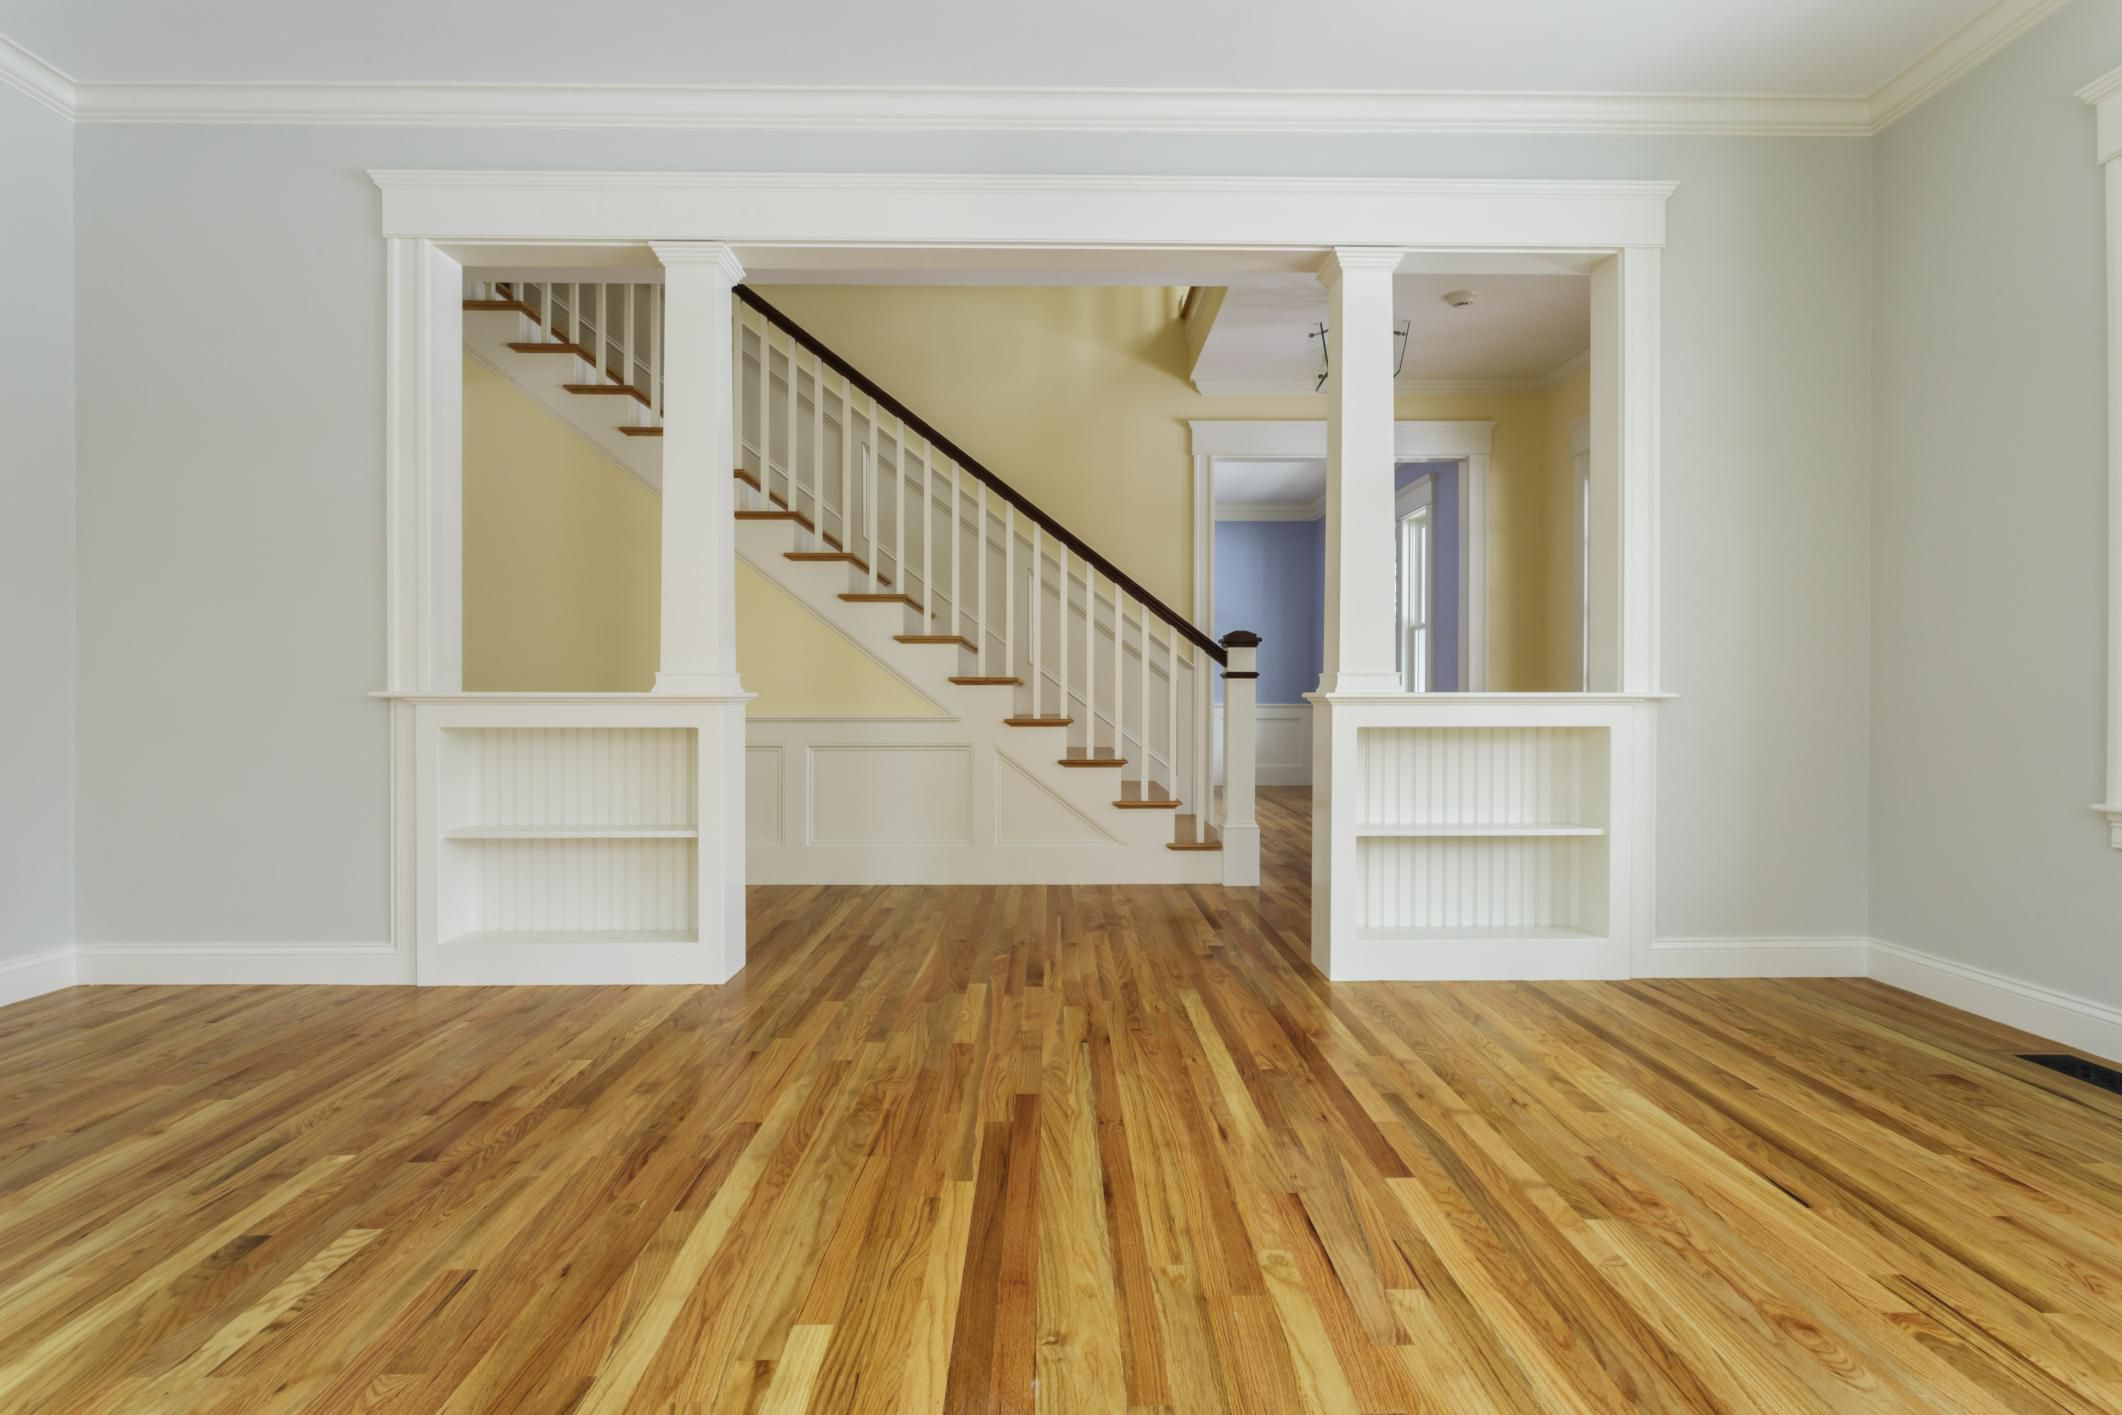 choosing stain color for hardwood floors of guide to solid hardwood floors inside 168686571 56a49f213df78cf772834e24